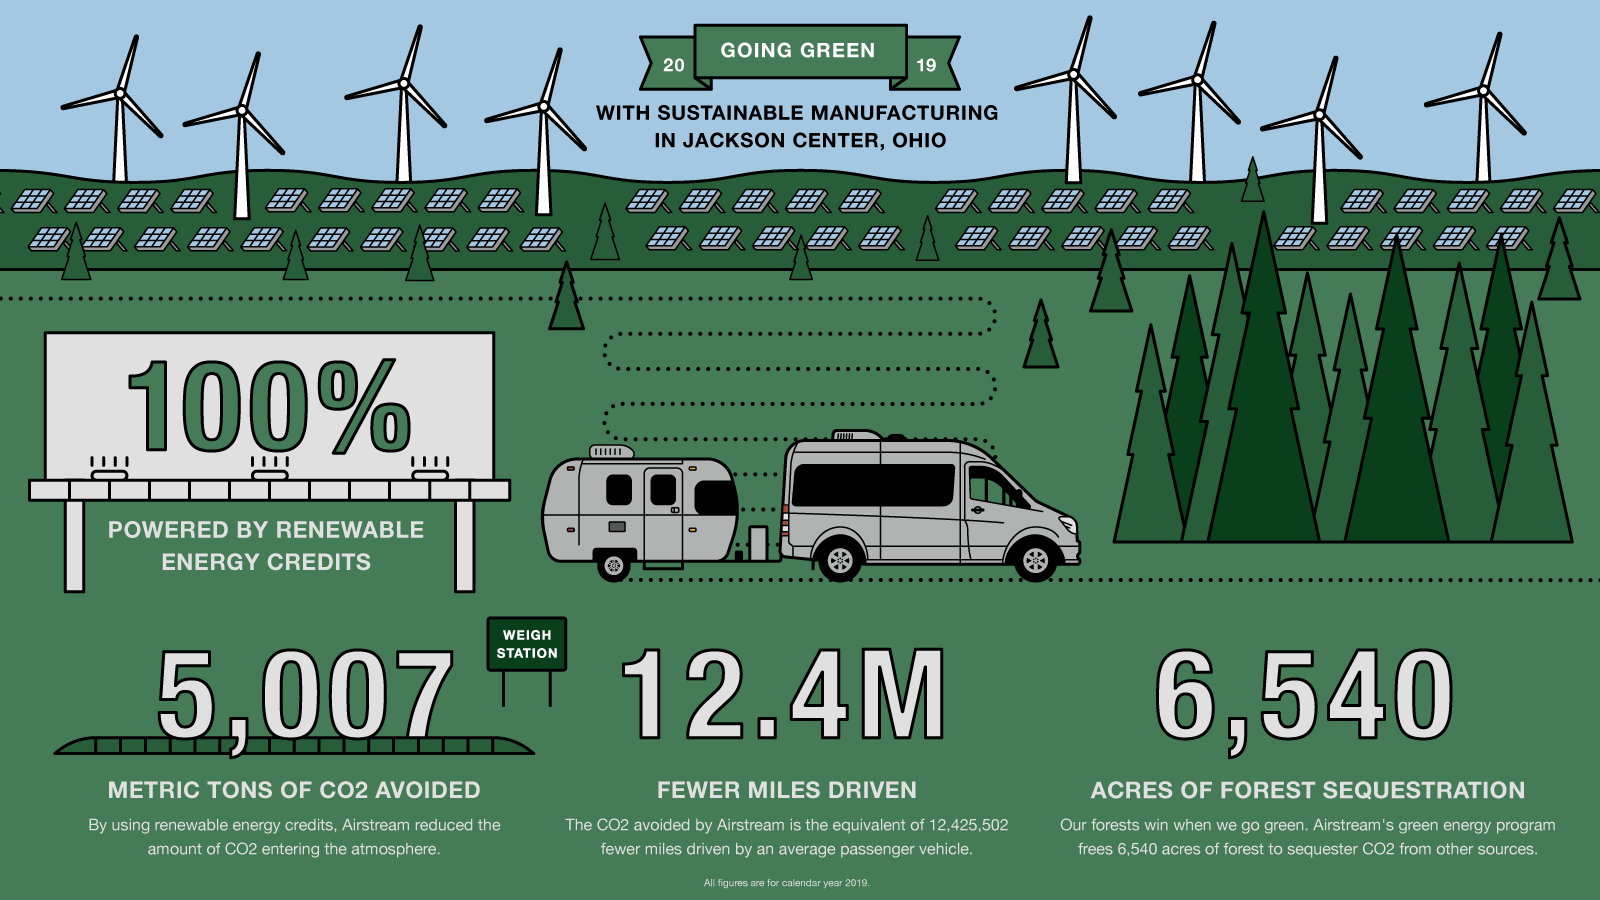 2020 Airstream_Infographic_final